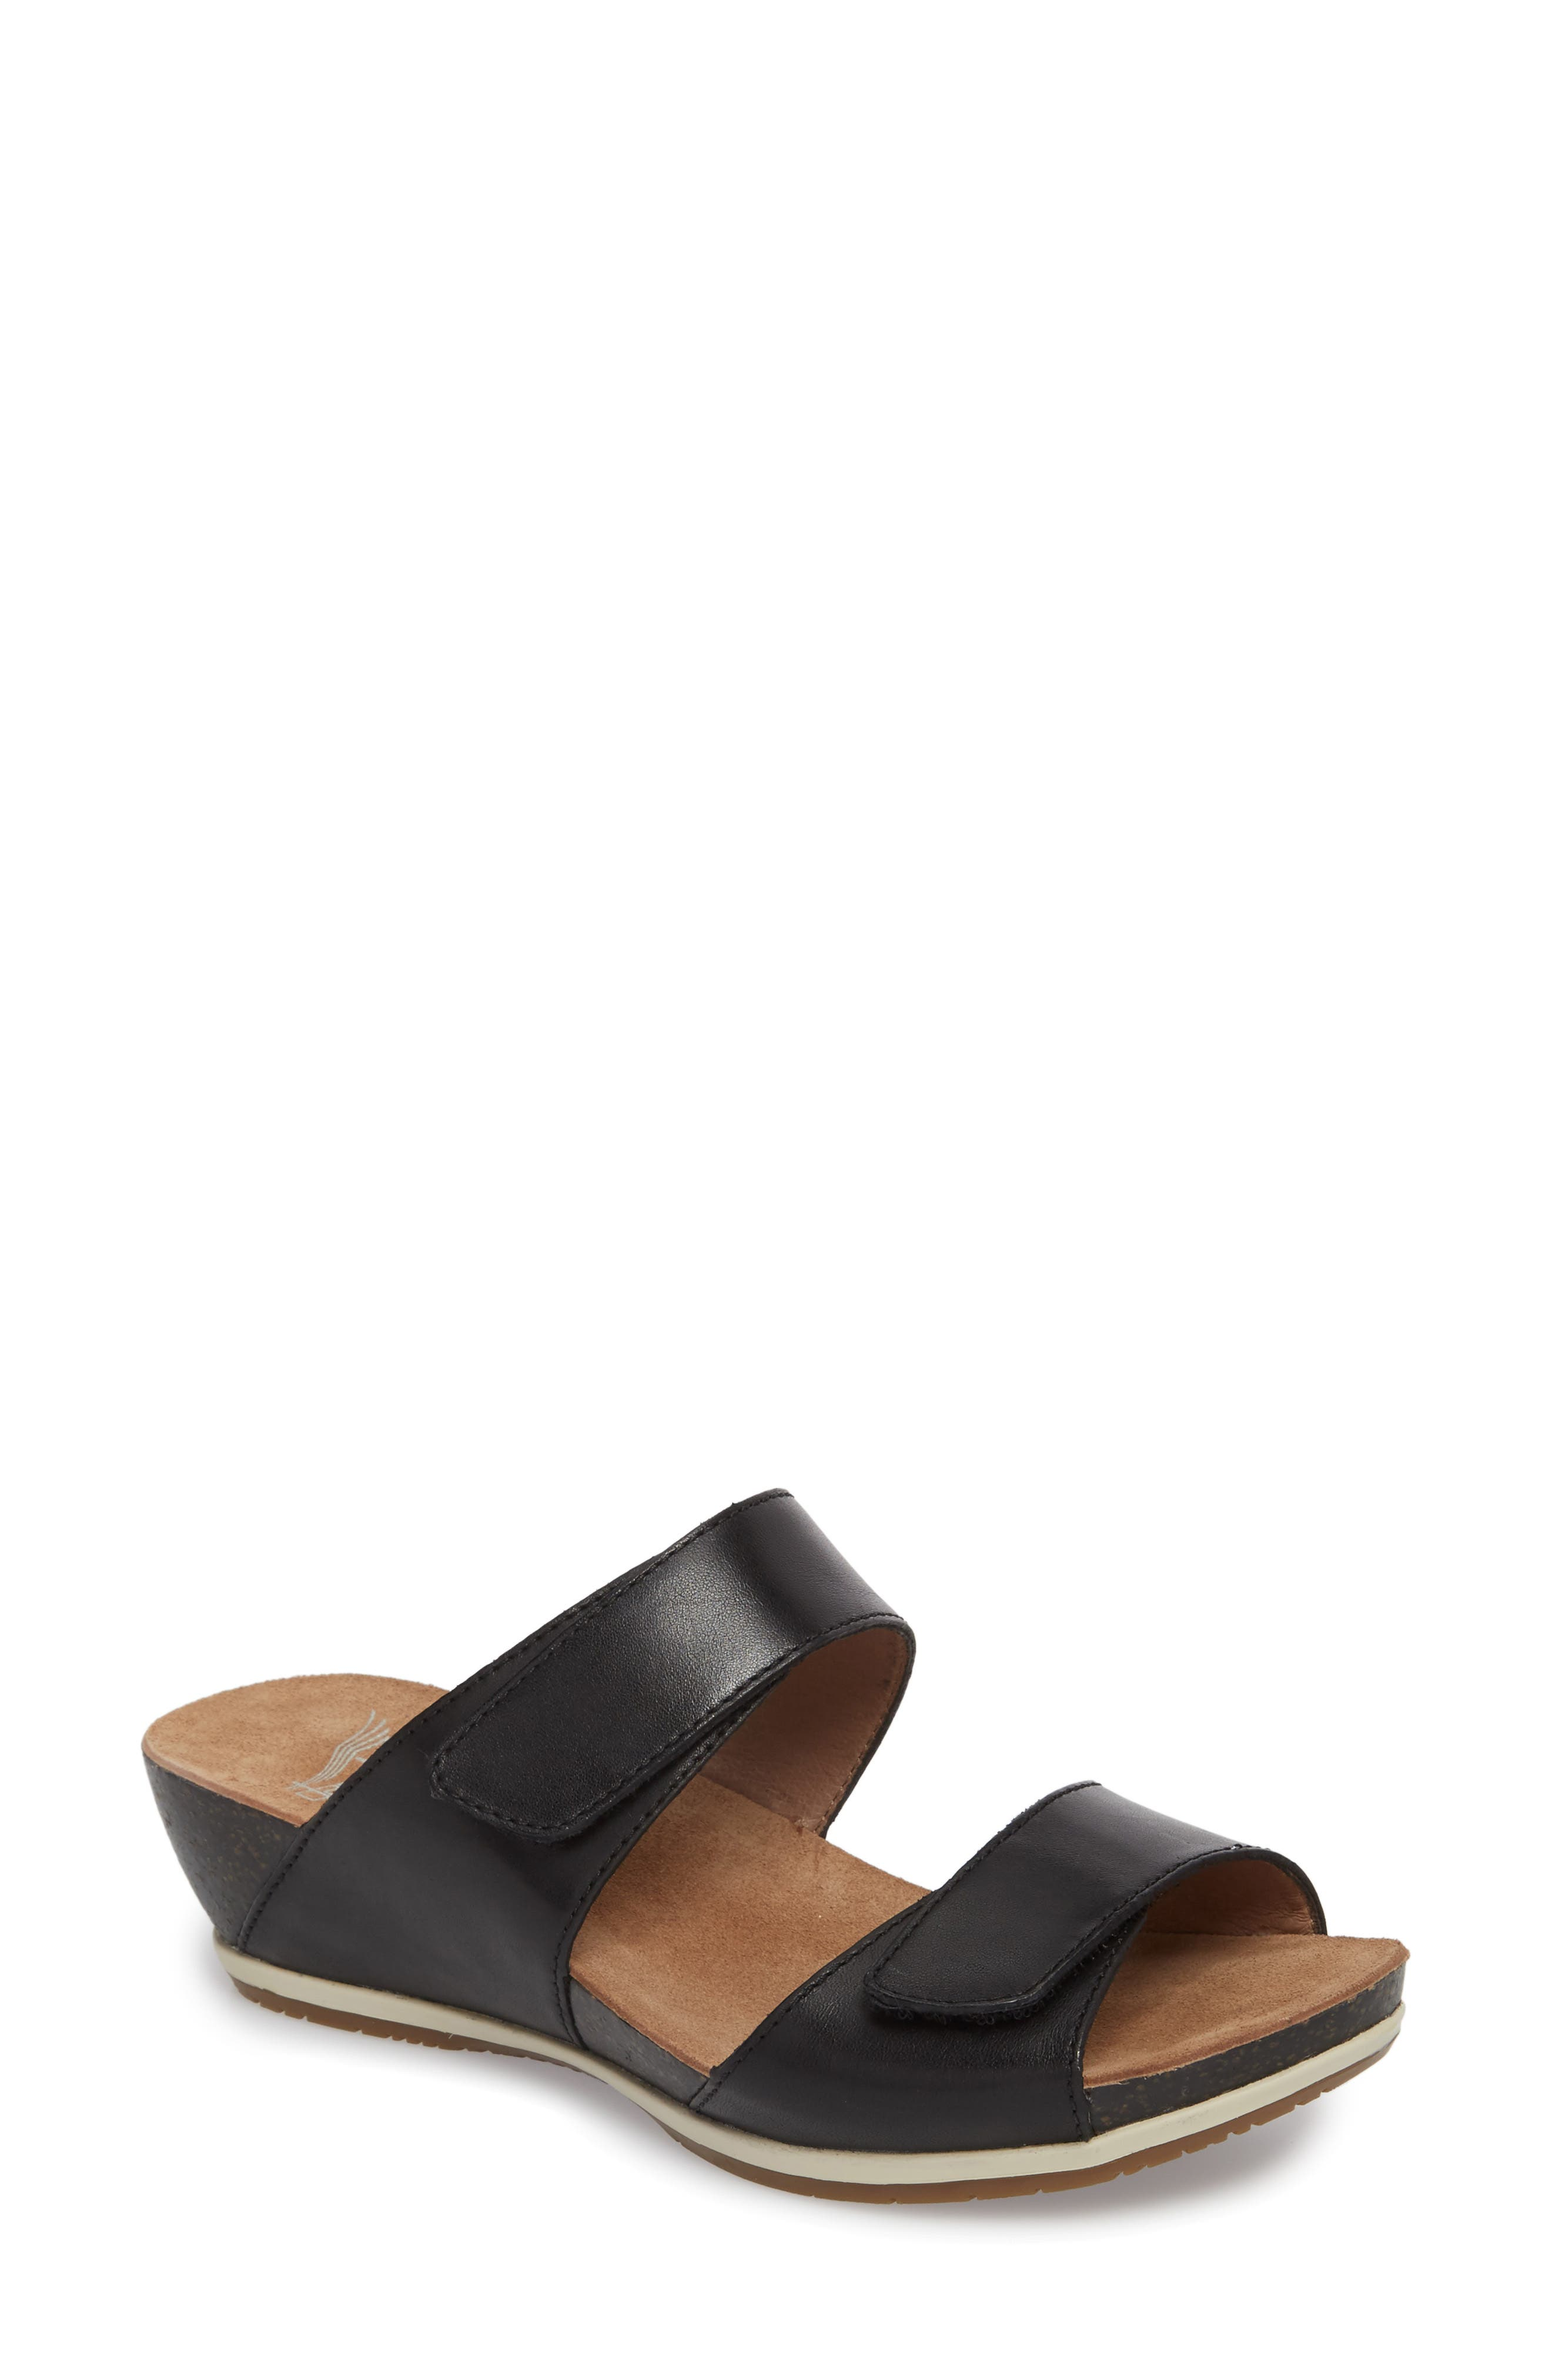 Vienna Slide Sandal,                         Main,                         color,